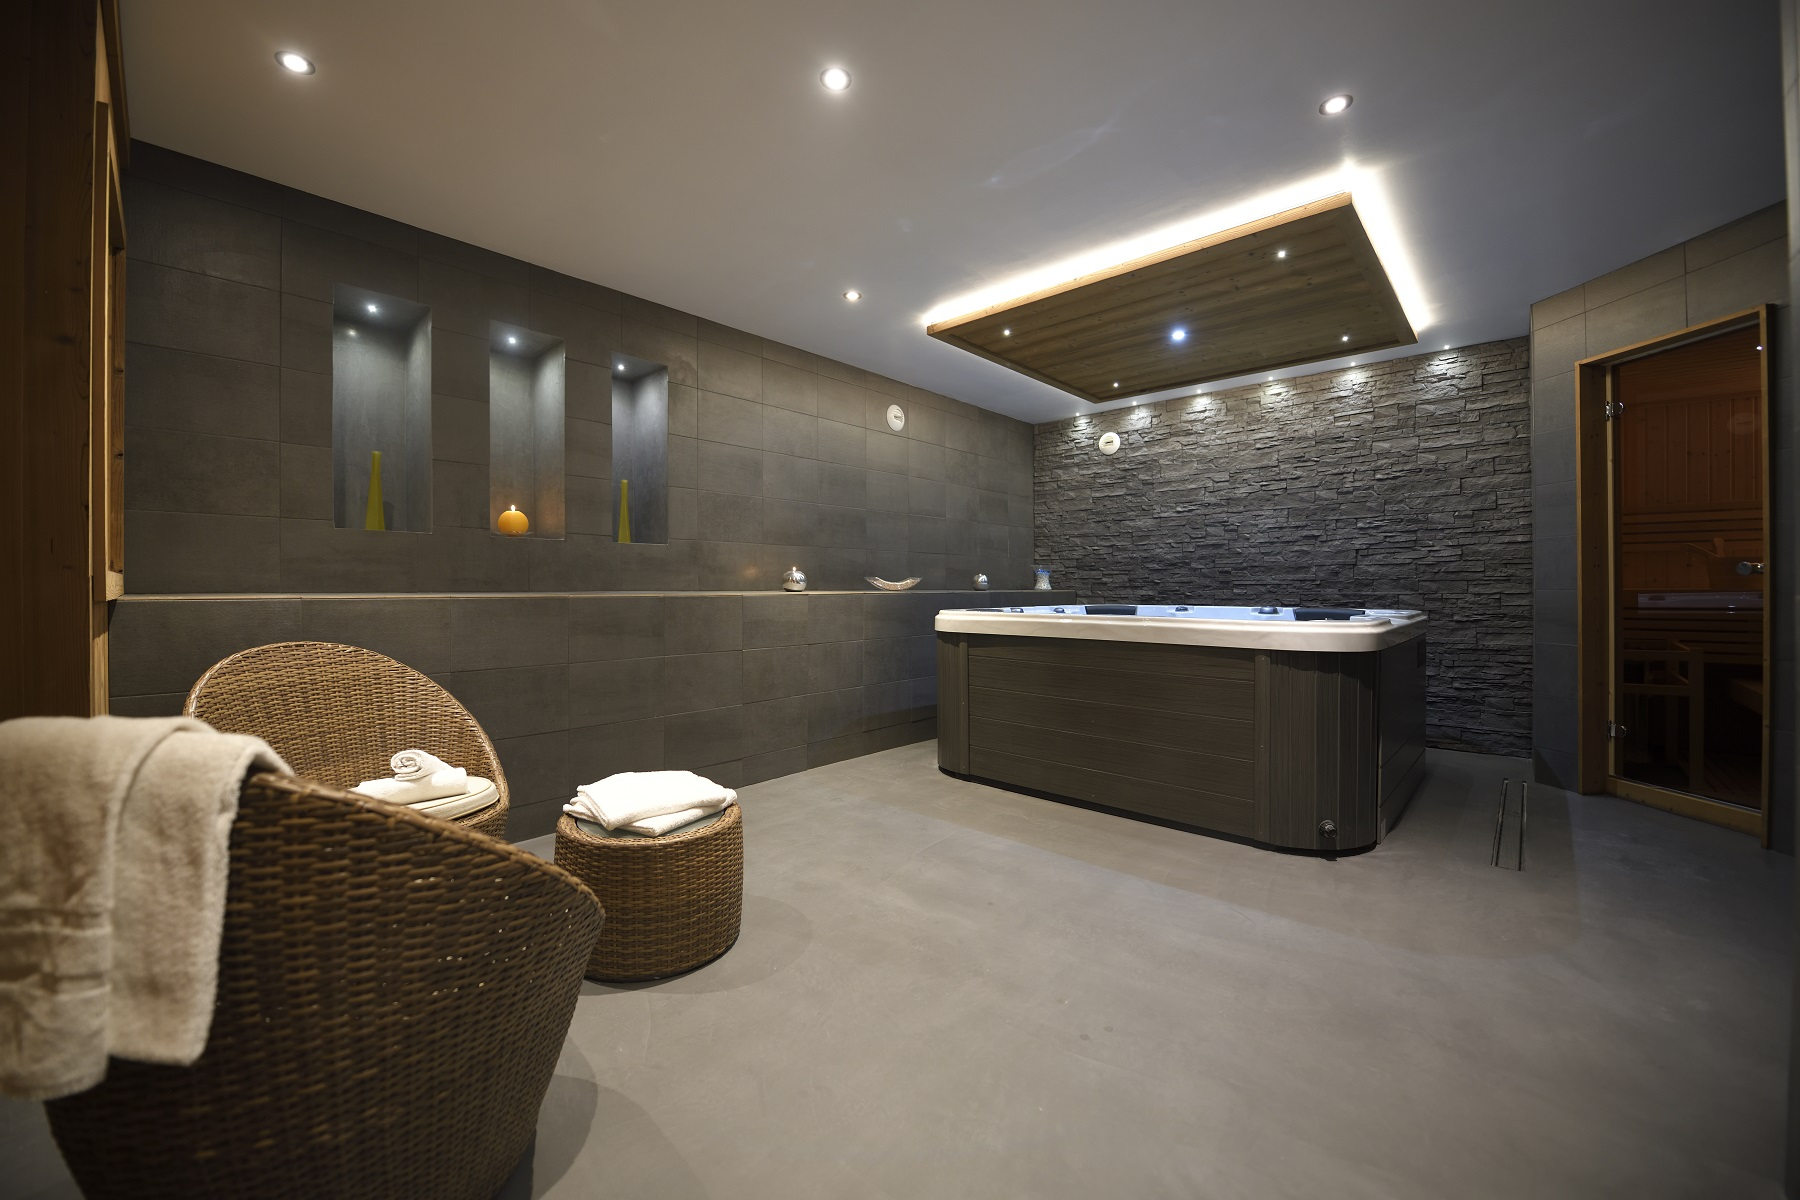 Chalet Ancolie spa